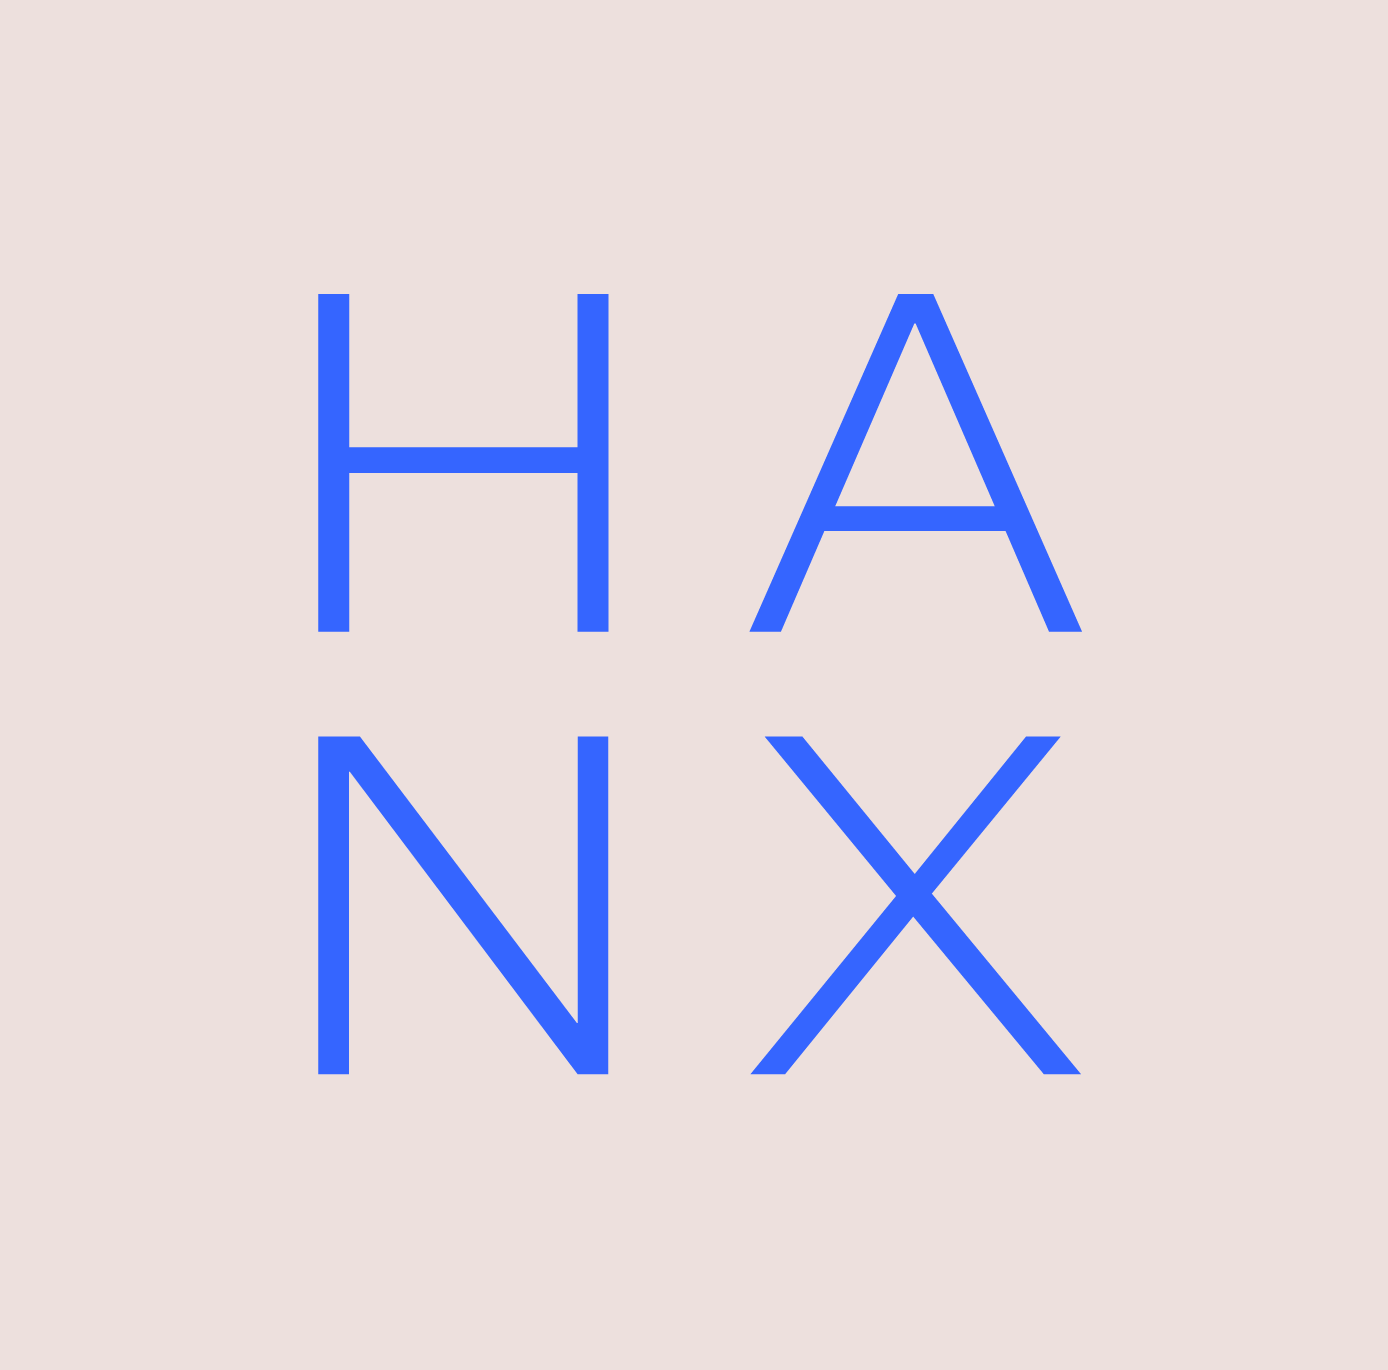 Hanx_Logo_square-01.png